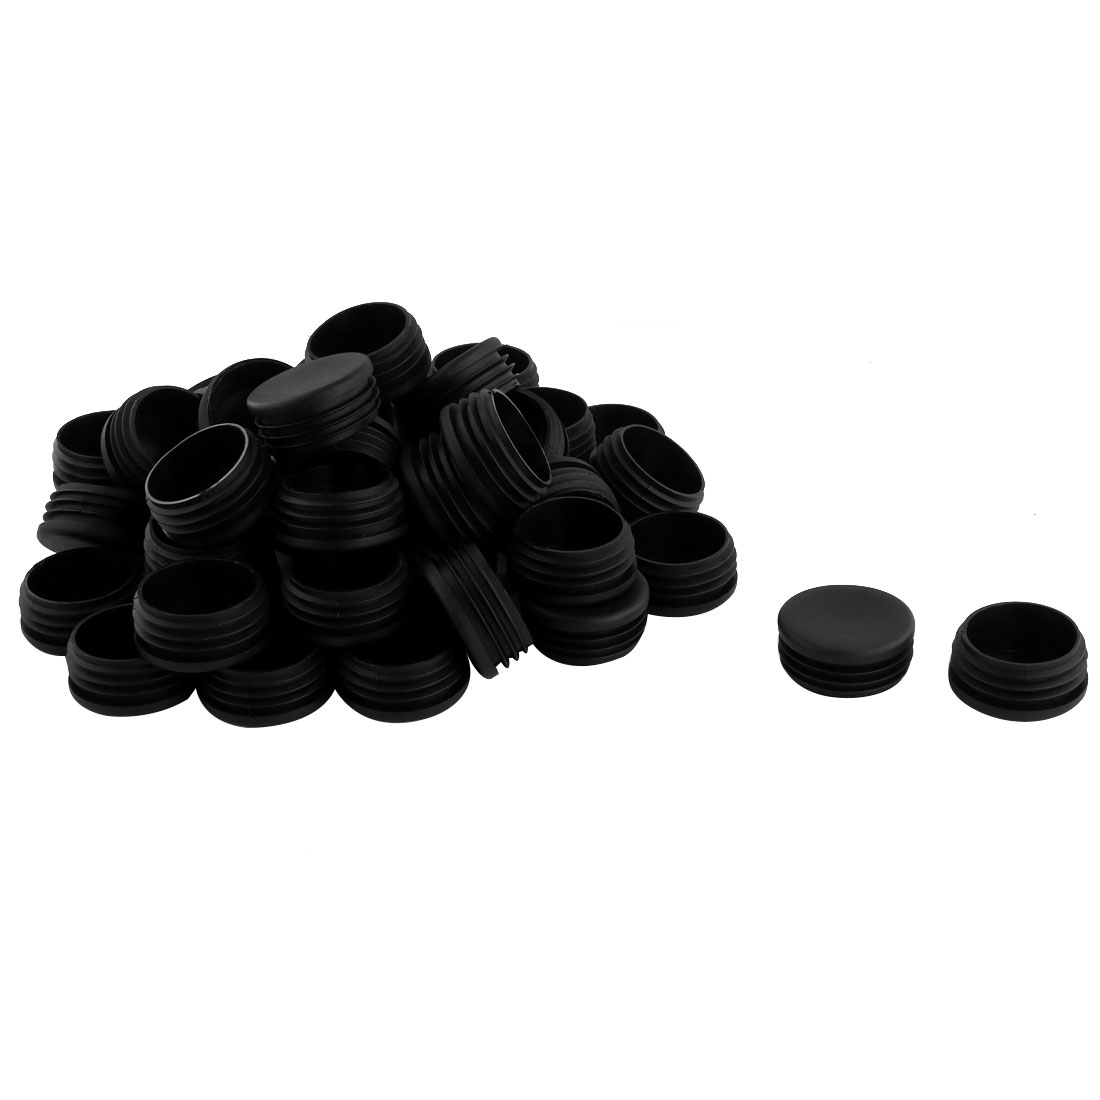 45mm Dia Plastic Round Table Chair Leg Feet Tube Pipe Insert Blanking End Cap Black 50pcs